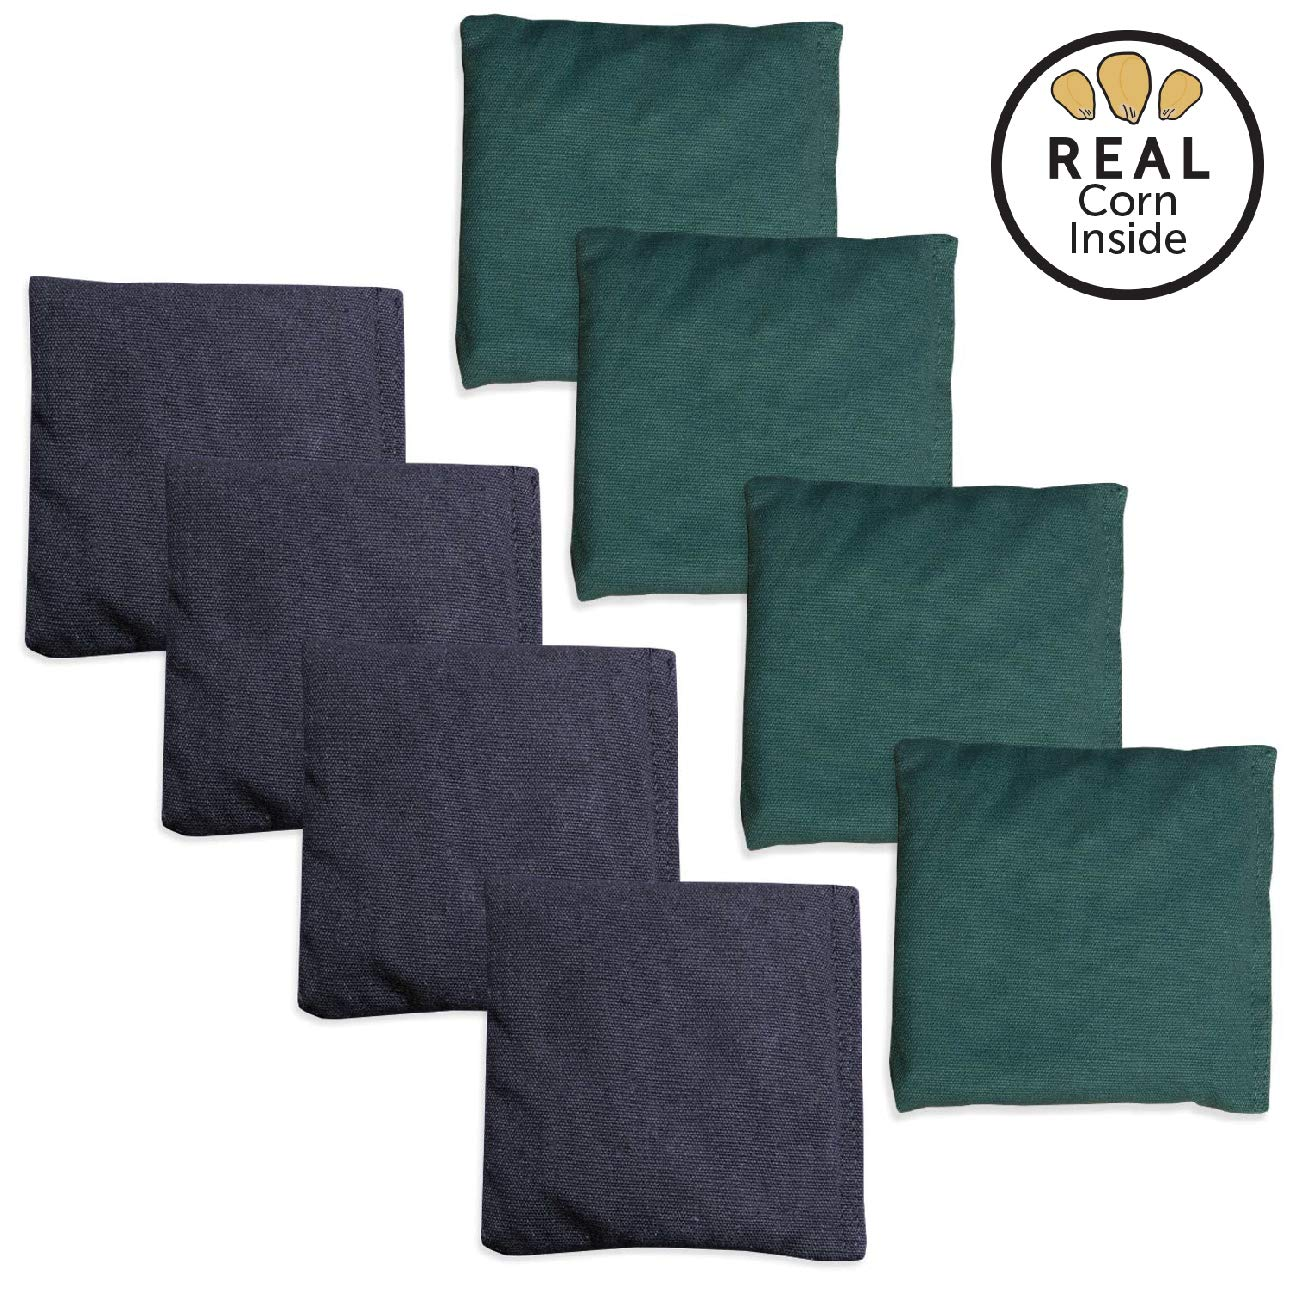 Corn Filled Cornhole Bags - Set of 8 Bean Bags for Corn Hole Game - Regulation Size & Weight - Hunter Green & Navy Blue